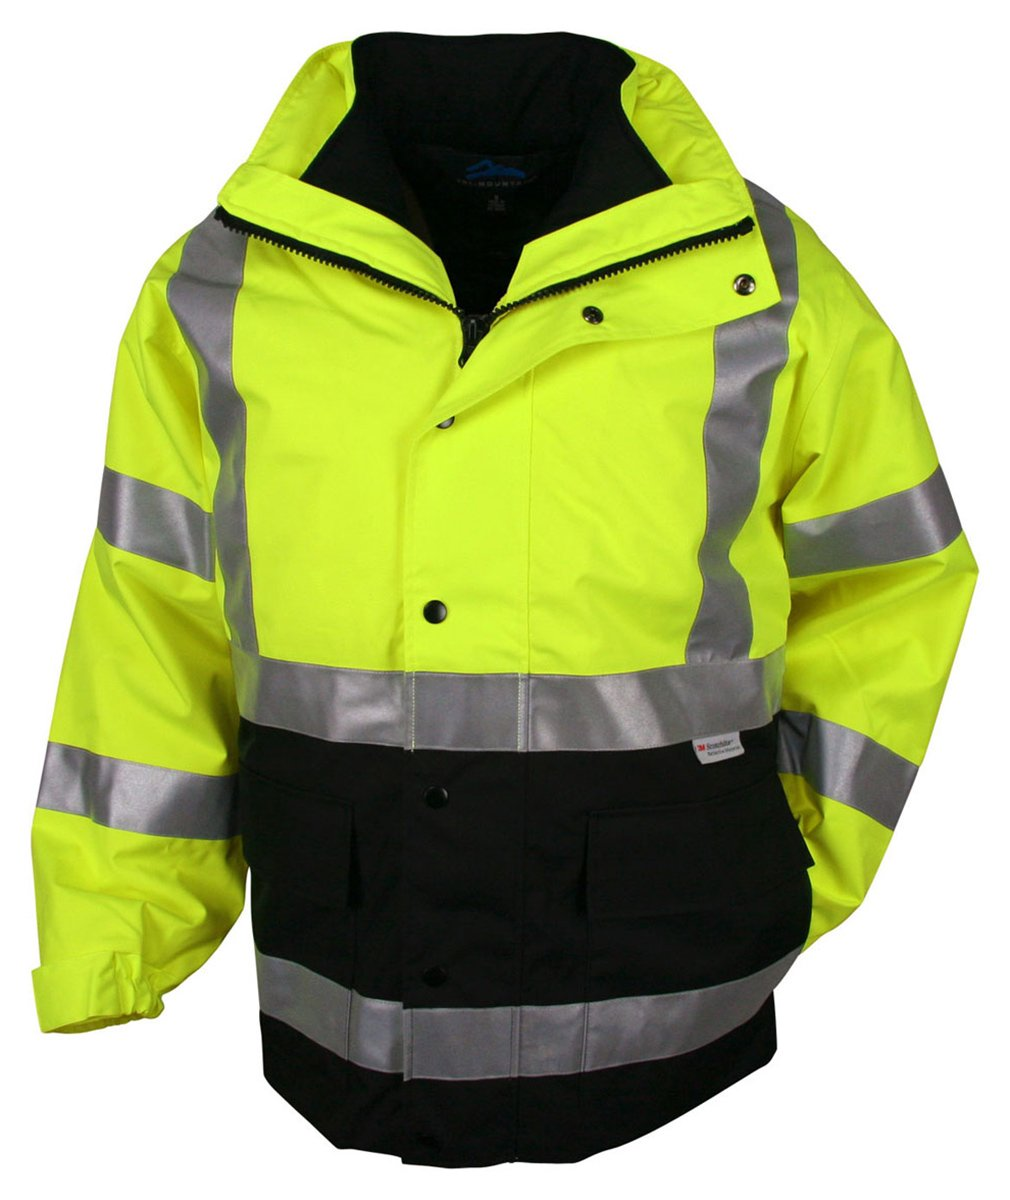 Tri-mountain 3-in-1 system waterproof safety parka. ANSI Class 3. - LIME GREEN/BLACK - X-Large